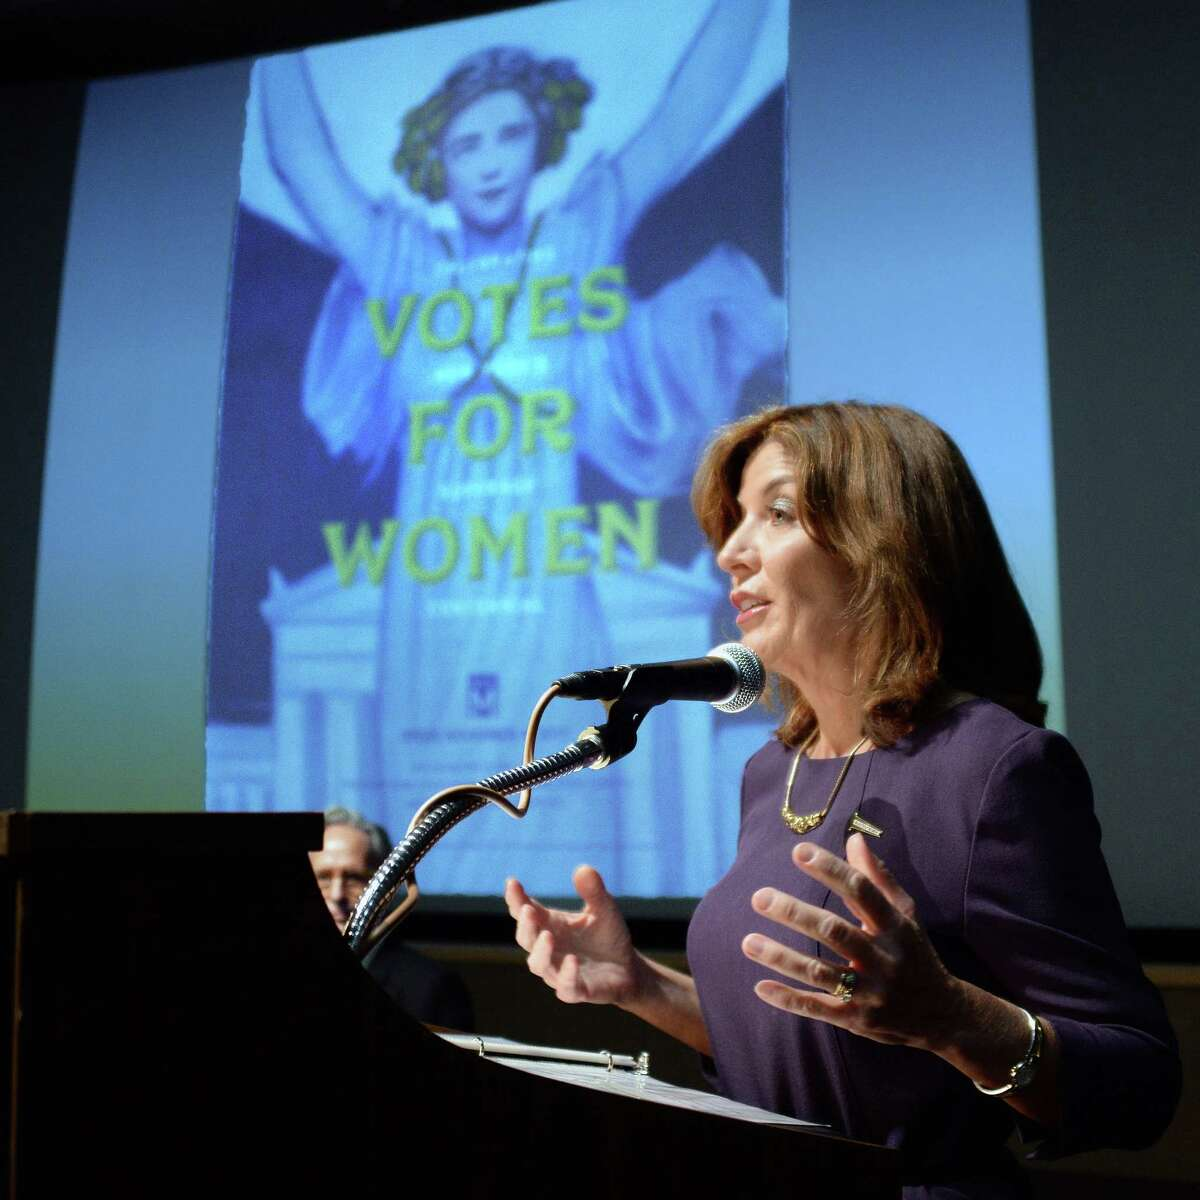 Chair of the State Women?'s Suffrage Commission Lieutenant Governor Kathy Hochul speaks during a special exhibition preview of the State Museum?'s newest exhibition honoring the 100th anniversary of women?'s right to vote in New York at the NY State Museum Wednesday Nov. 1, 2017 in Albany, NY. (John Carl D'Annibale / Times Union)